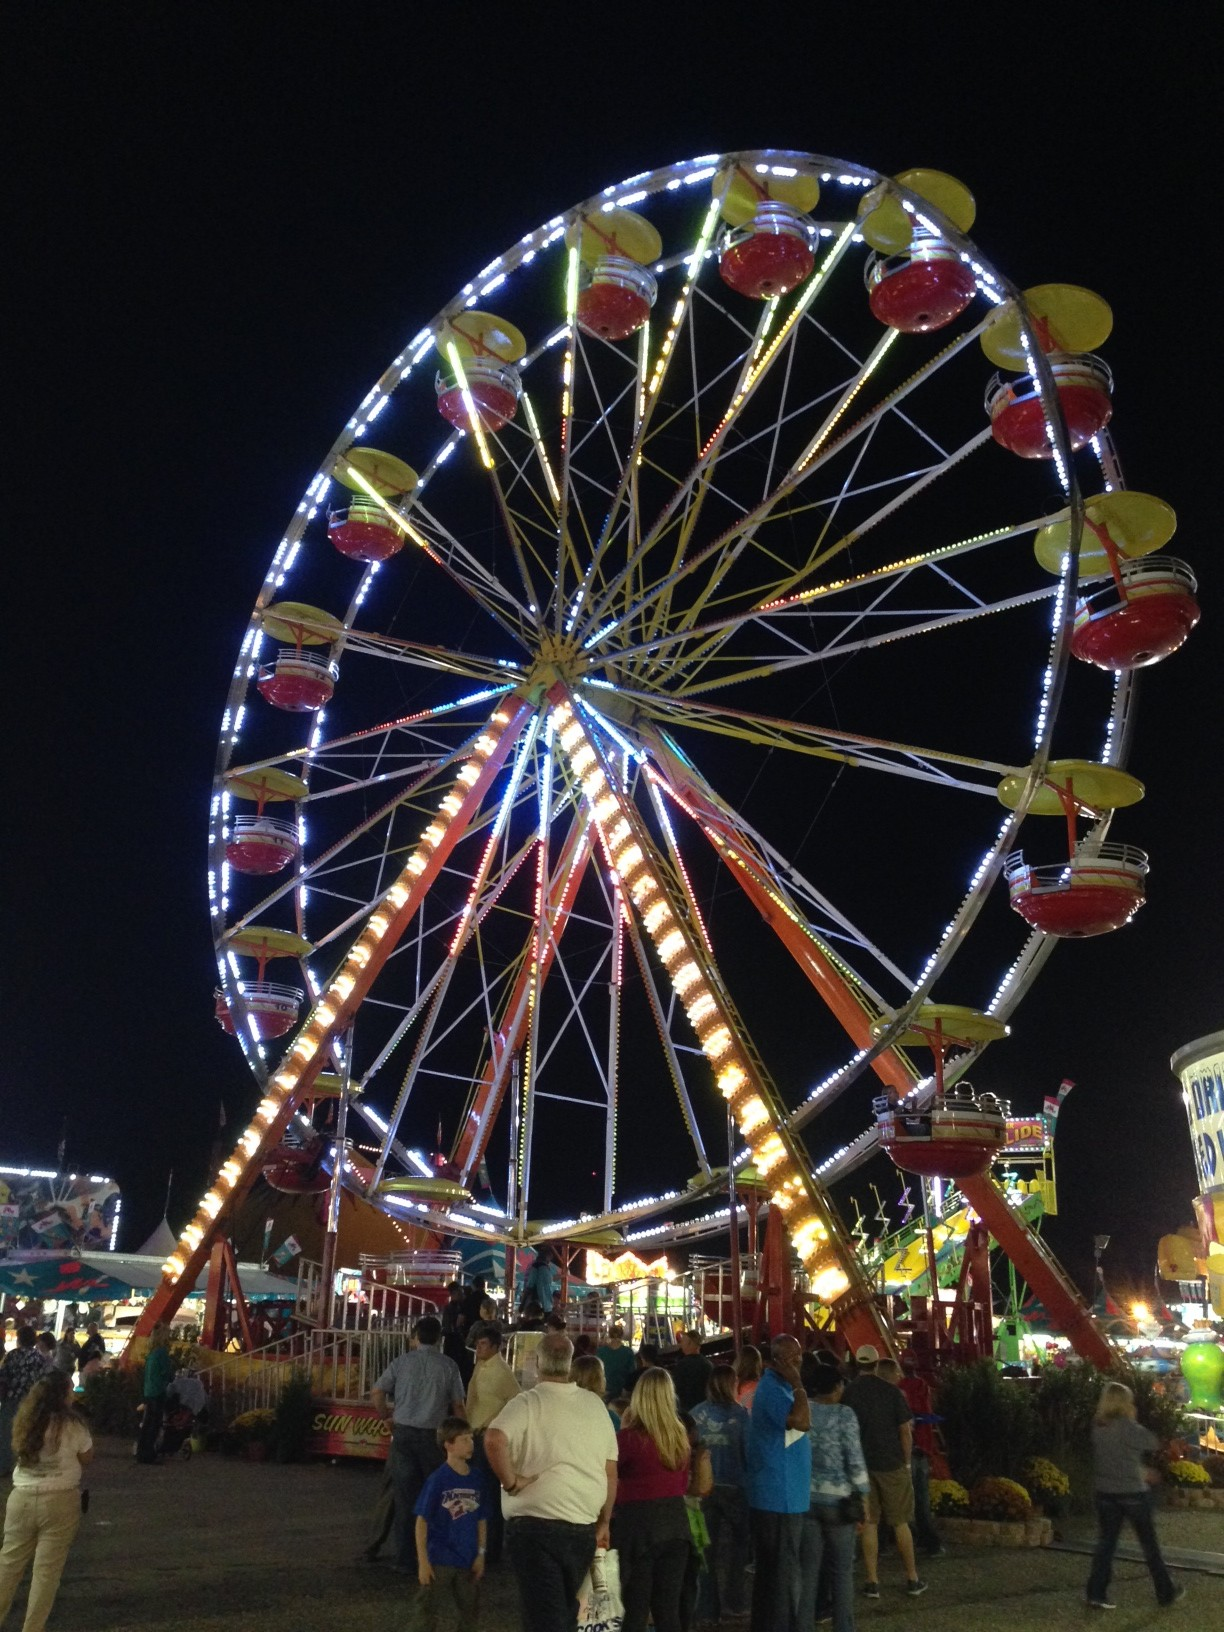 There is really no good reason why we hadn't been to the fair yet. We have lived in Montgomery for several years, and attending the fair seems like something that...